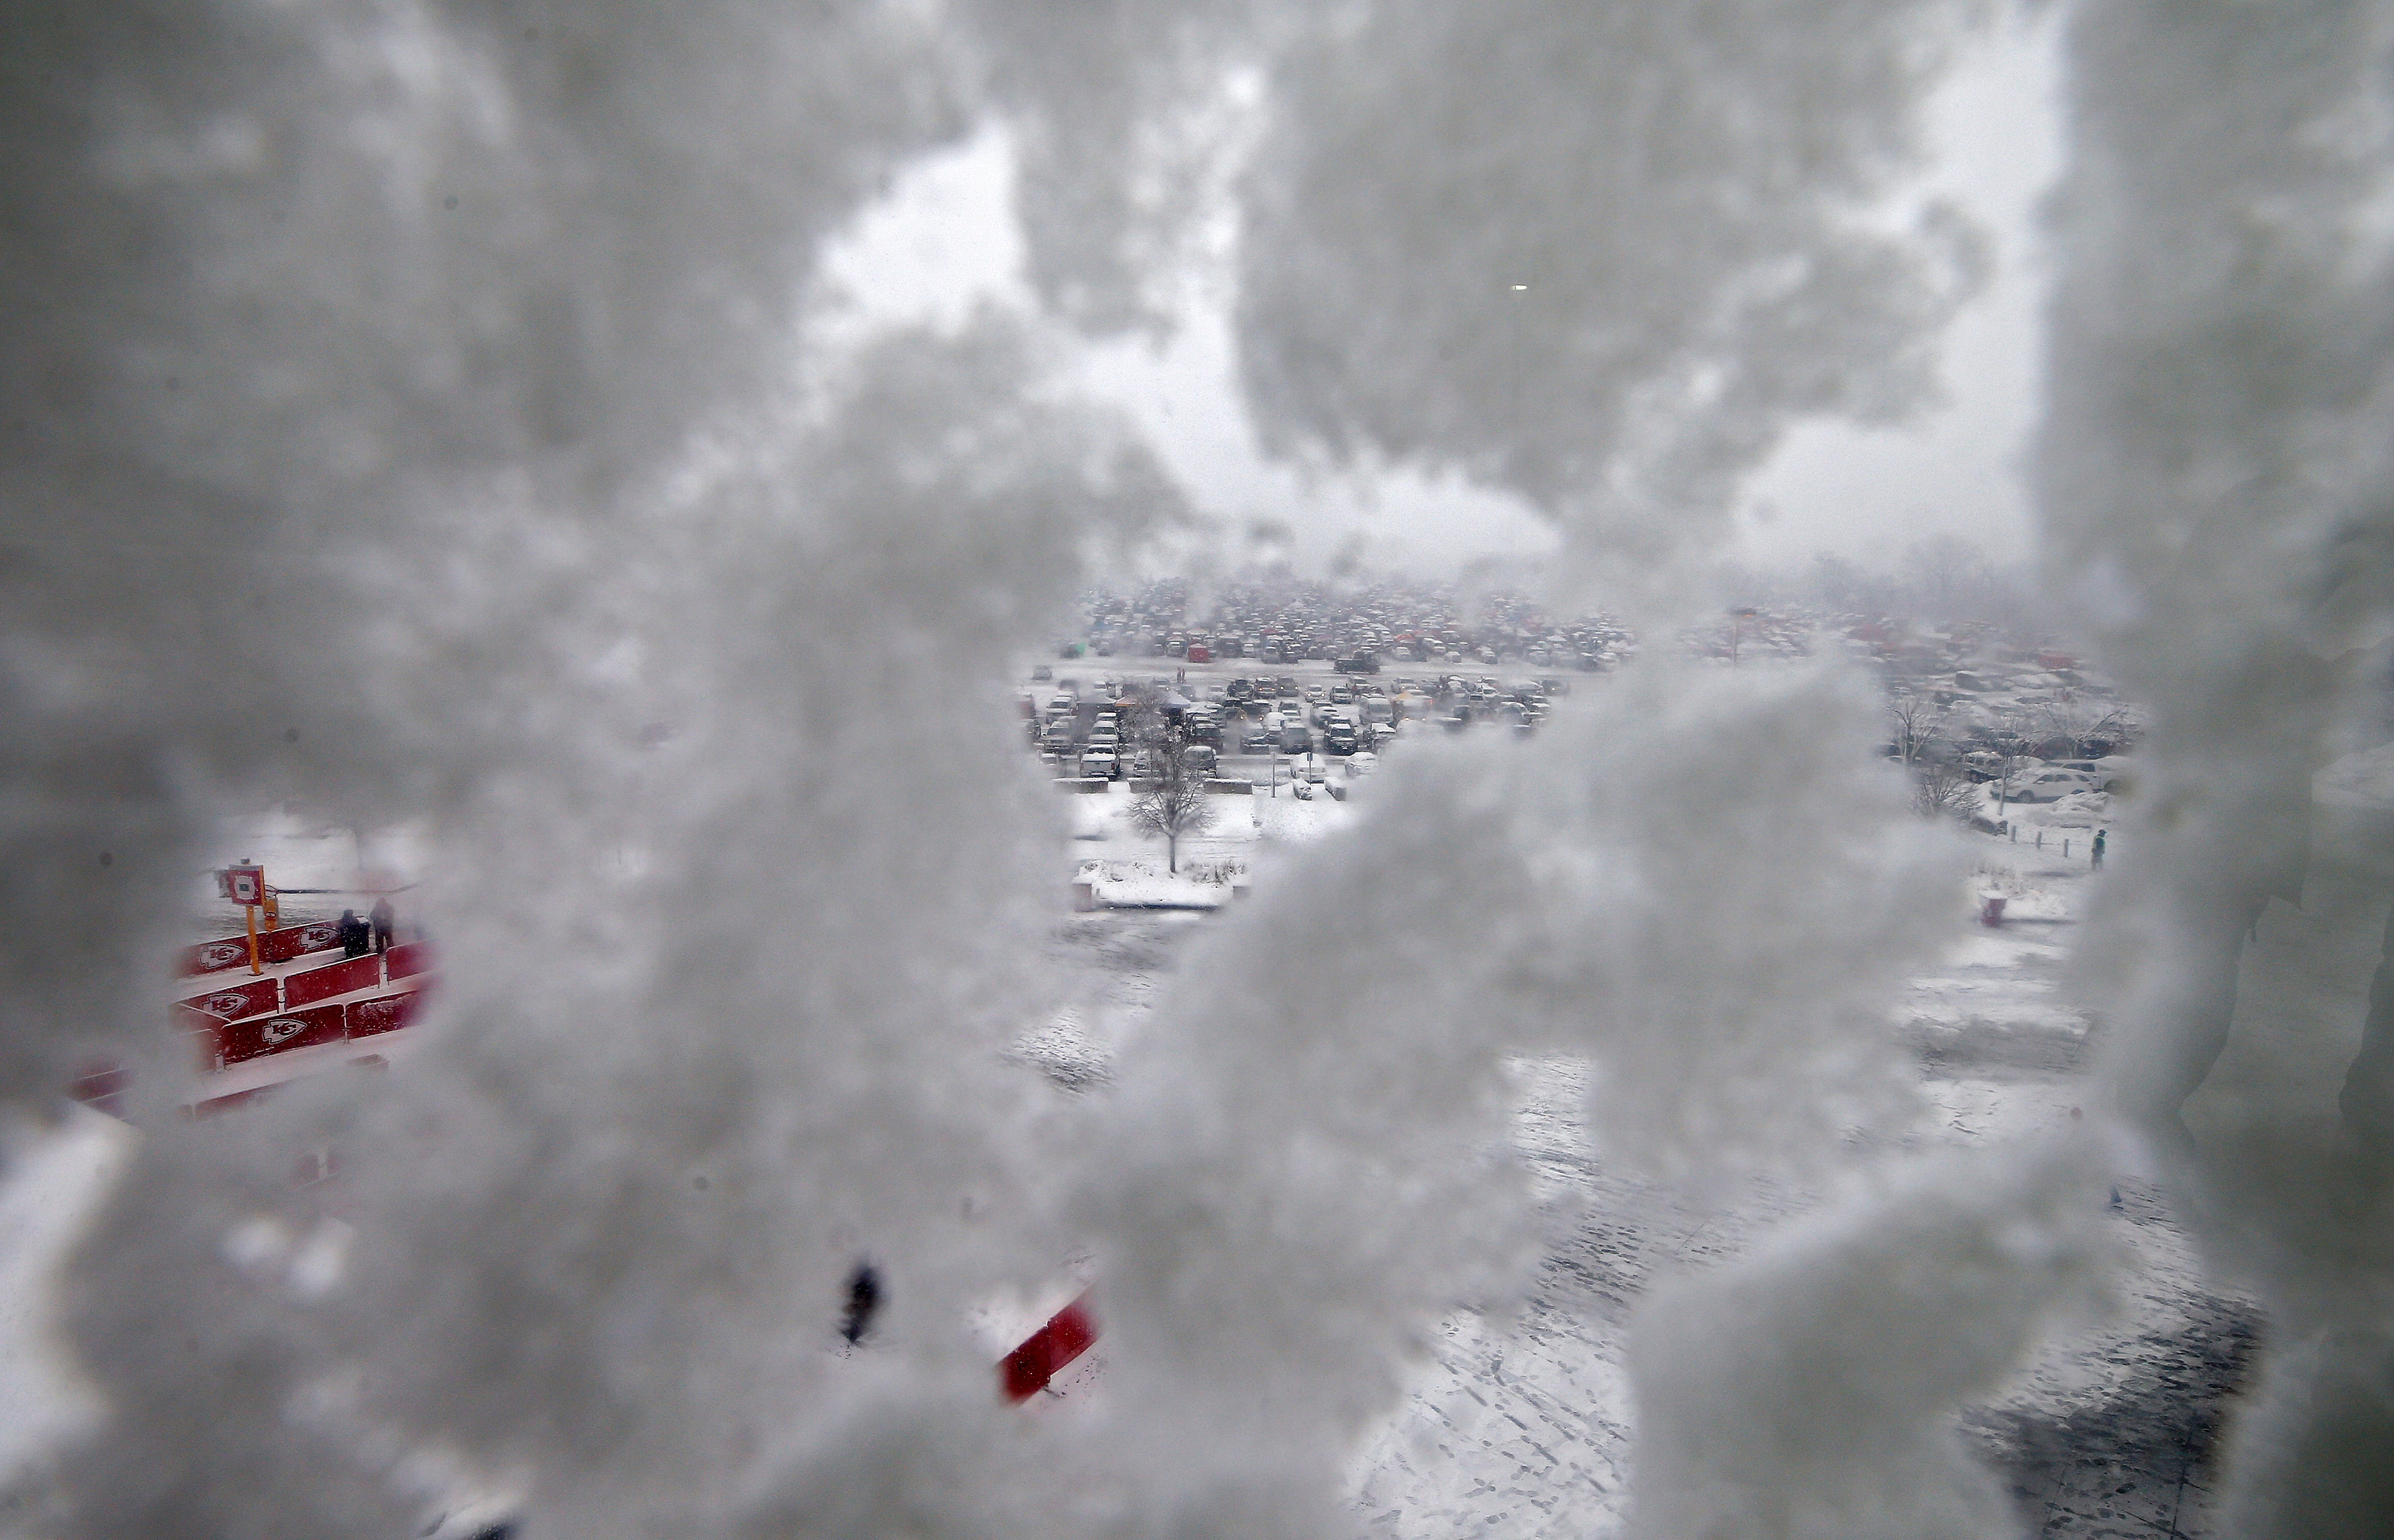 No shutdown for Weather Service 'tirelessly' forecasting snowstorm